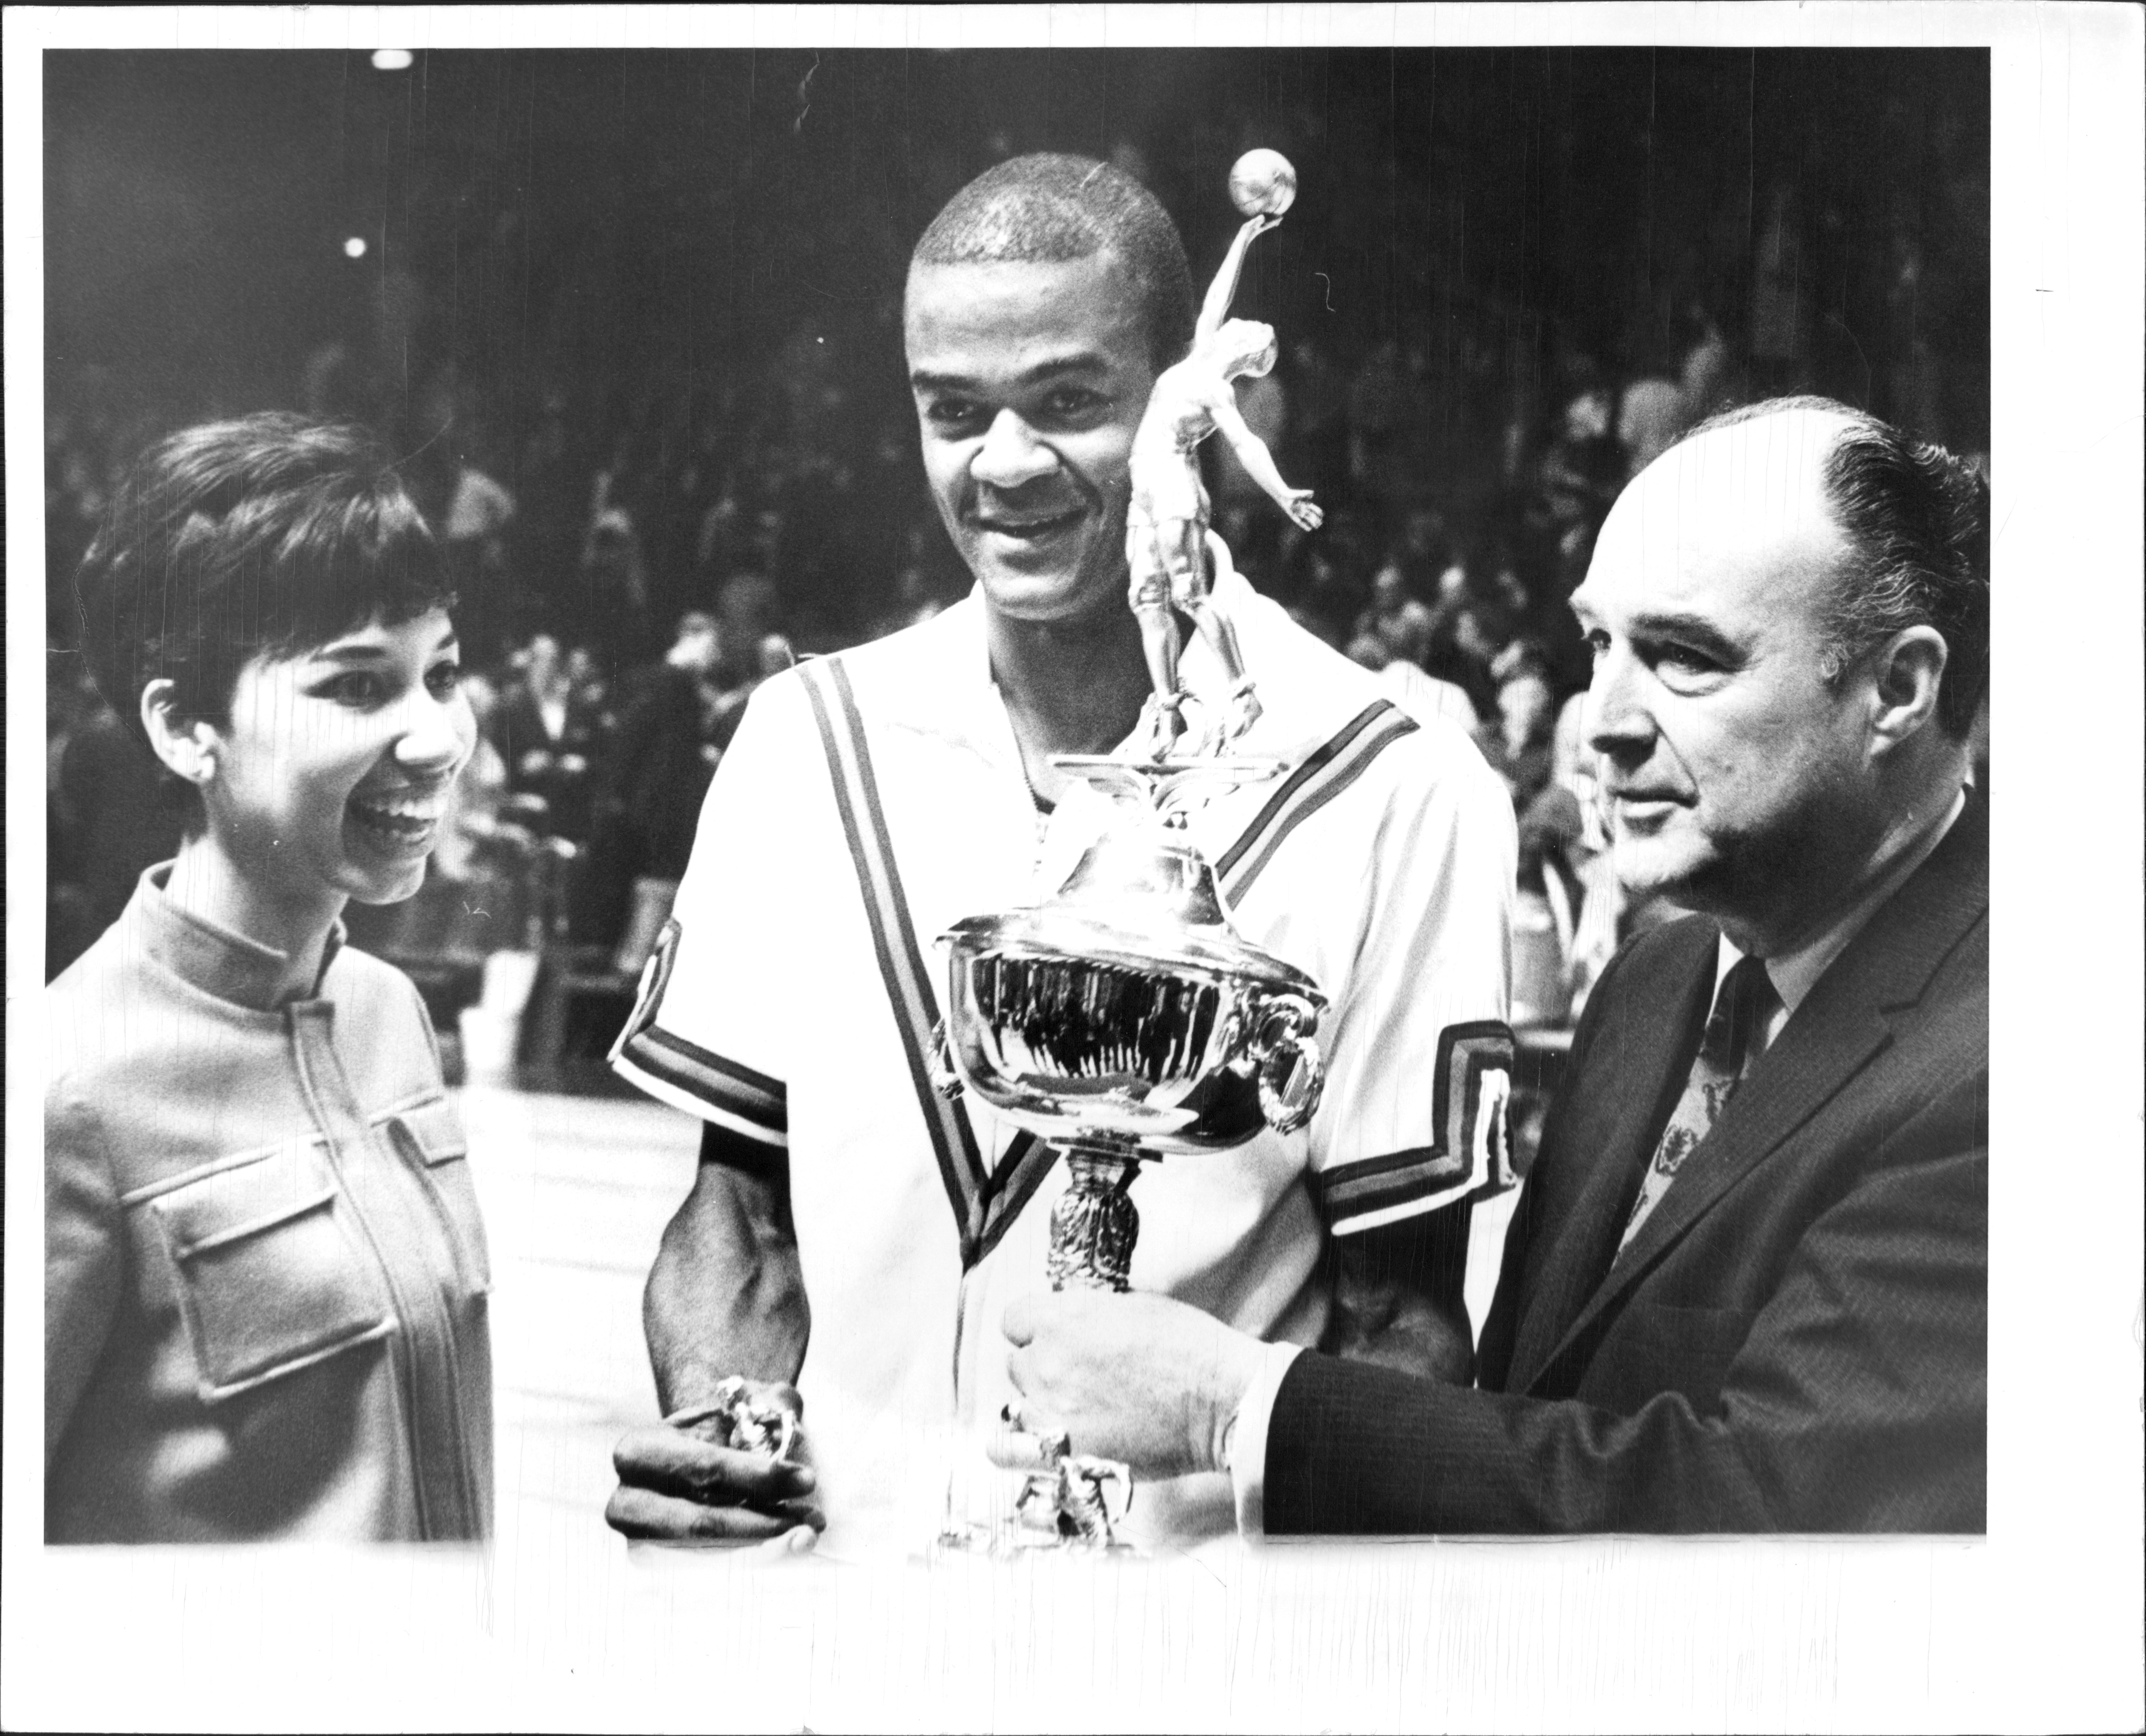 Hal Greer Wins All-Star Game's Most Valuable Player Award